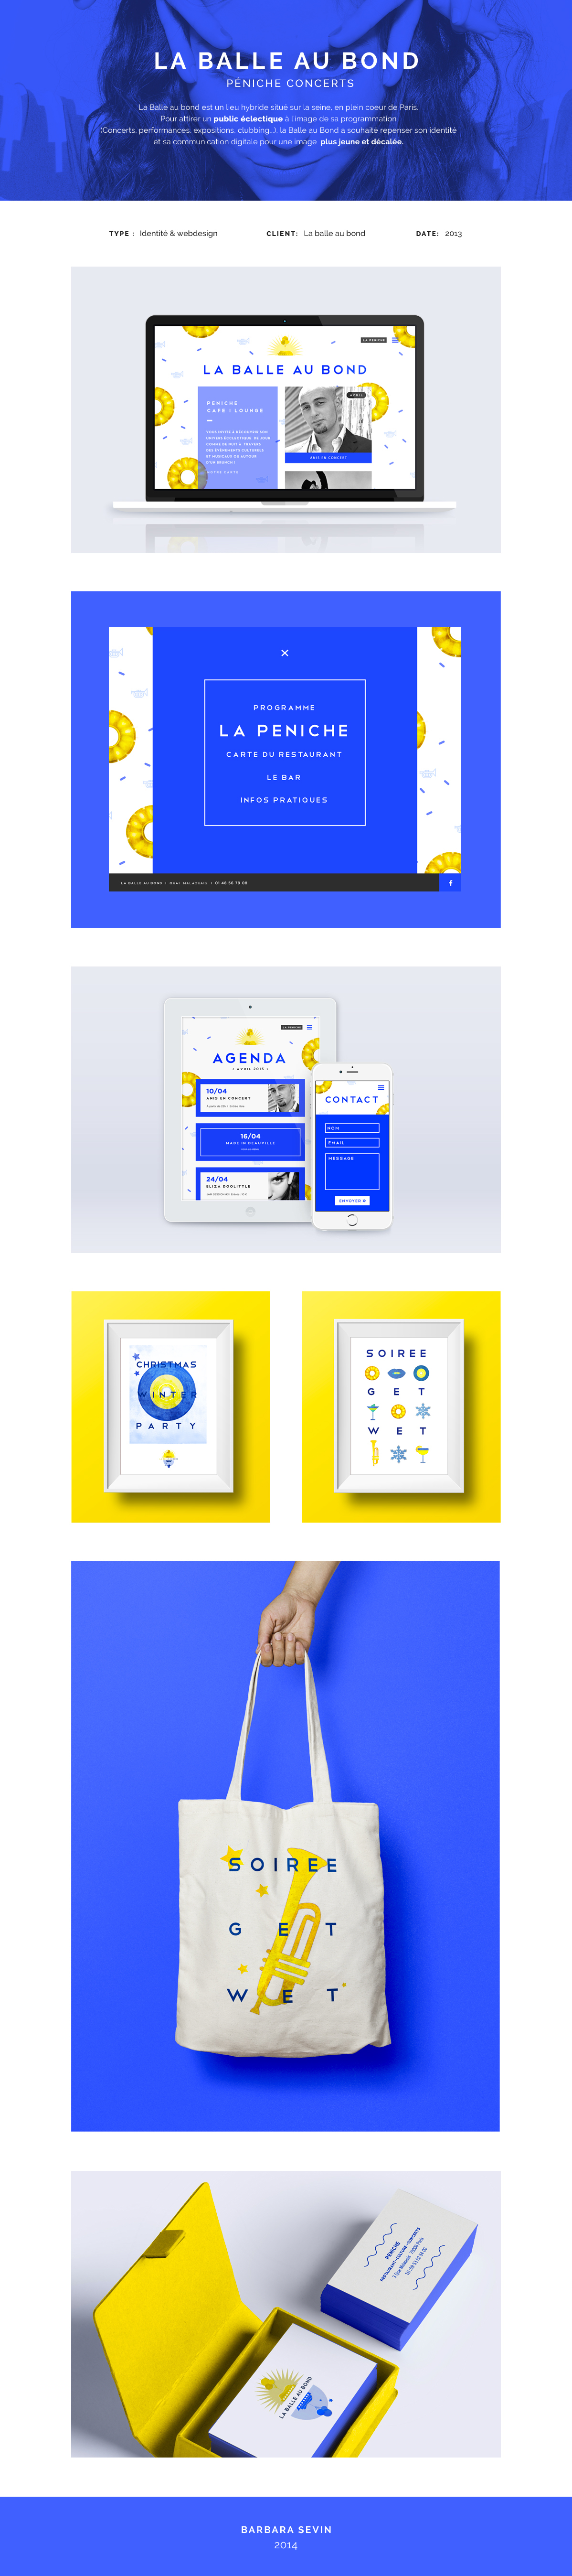 balle au bond bleu concerts spectacle club flyer identity yellow blue Young Fun Website Responsive